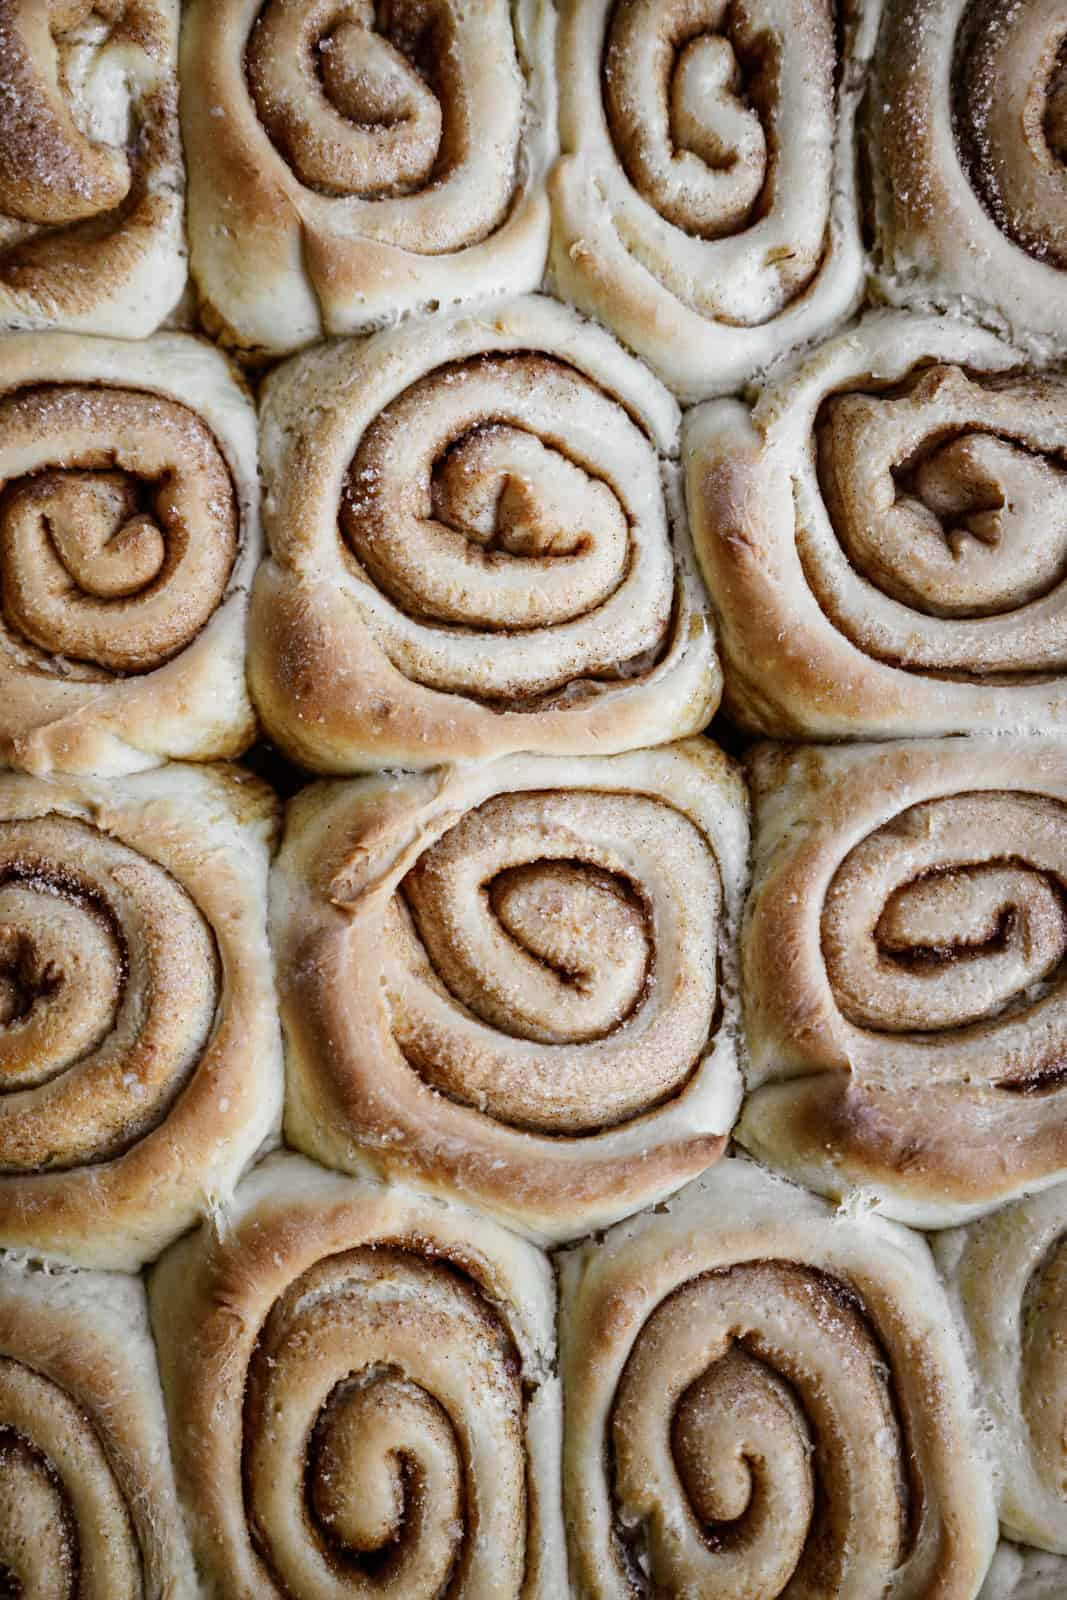 Cinnamon buns without icing.